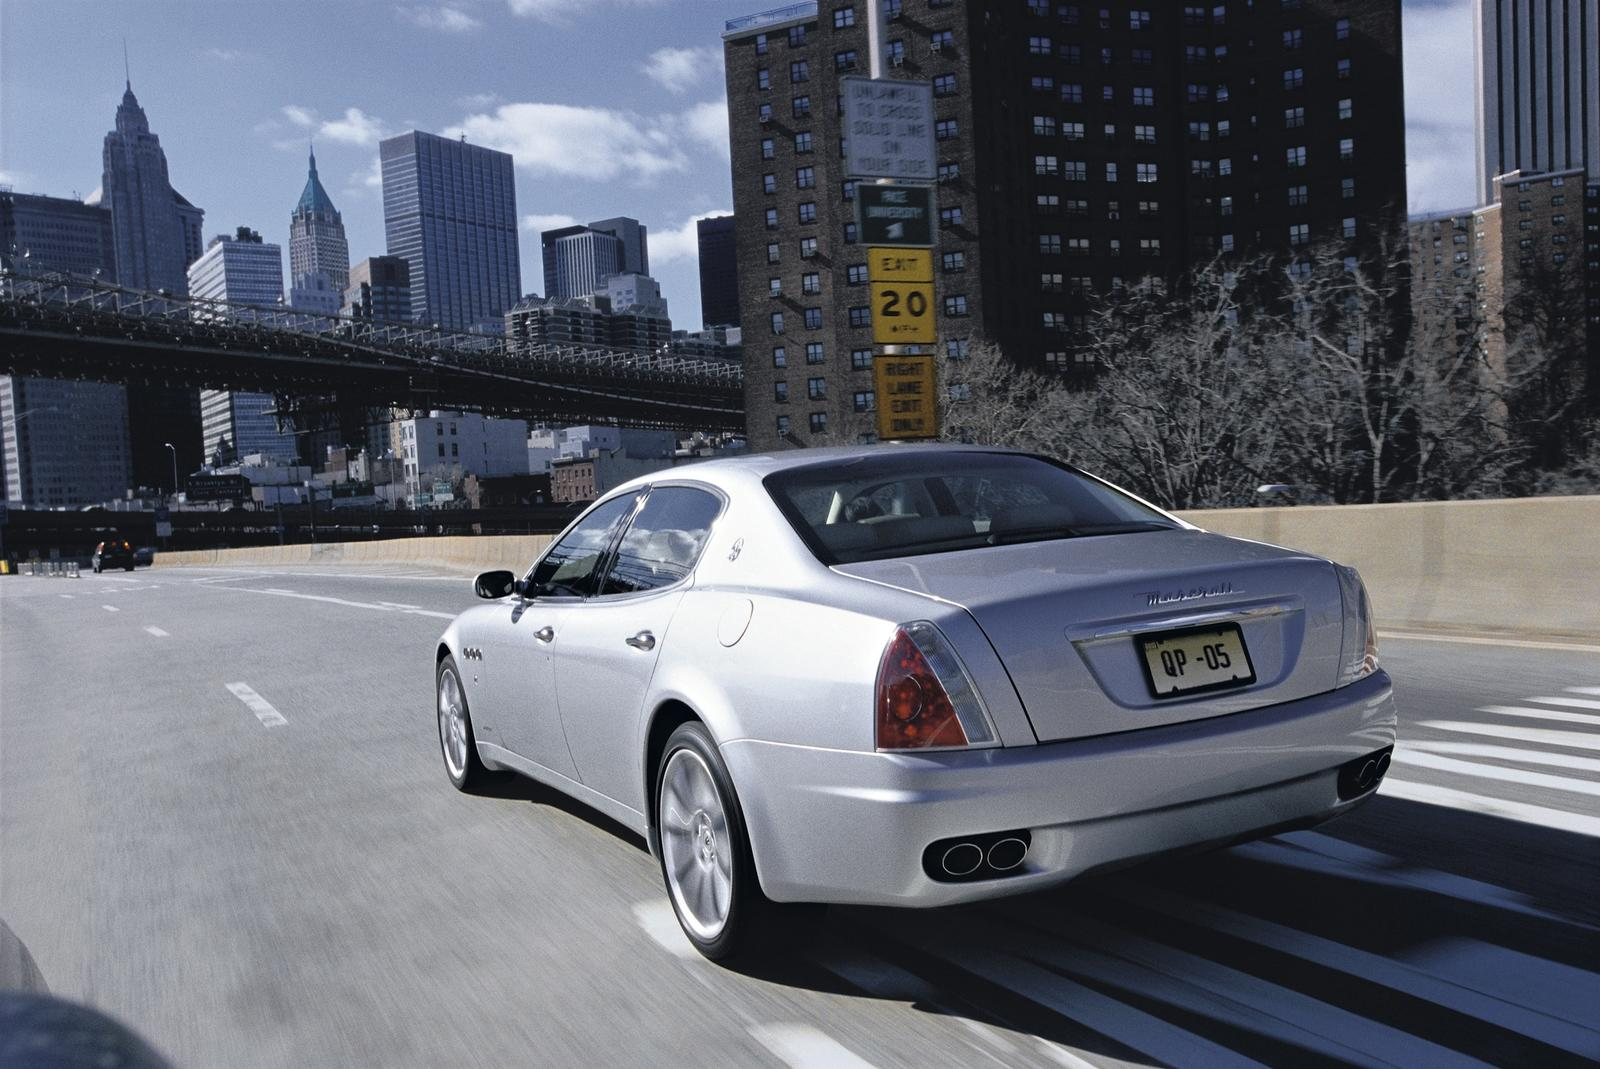 2007 maserati quattroporte automatic picture 153640 car review top speed. Black Bedroom Furniture Sets. Home Design Ideas